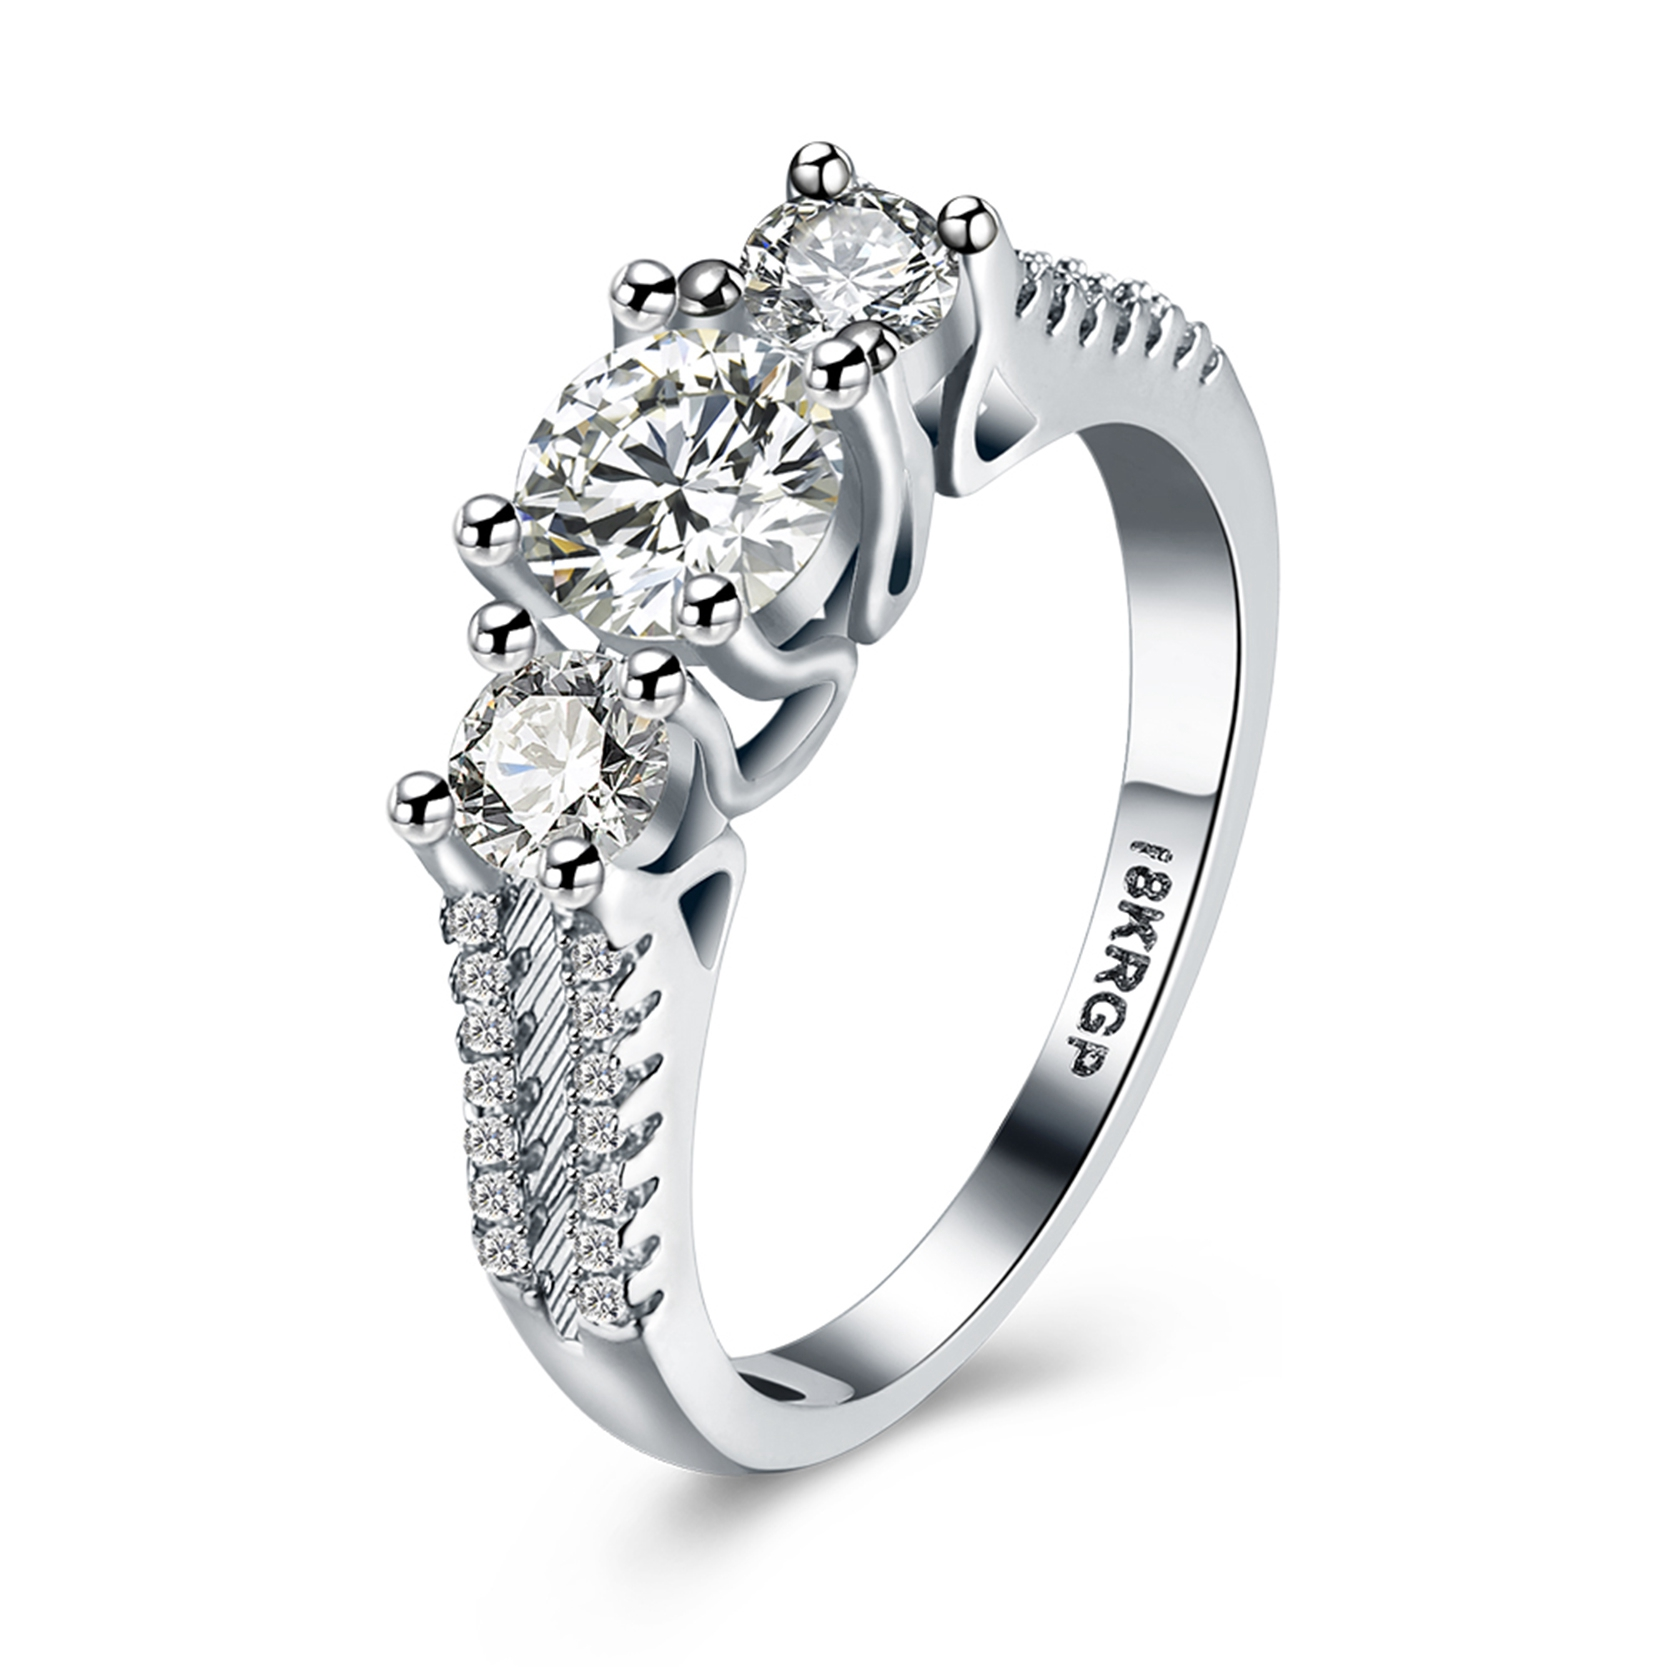 DROLE High quality Silver Color CZ Rings Top Design Bridal Wedding 3 Stone Engagement  Ring for